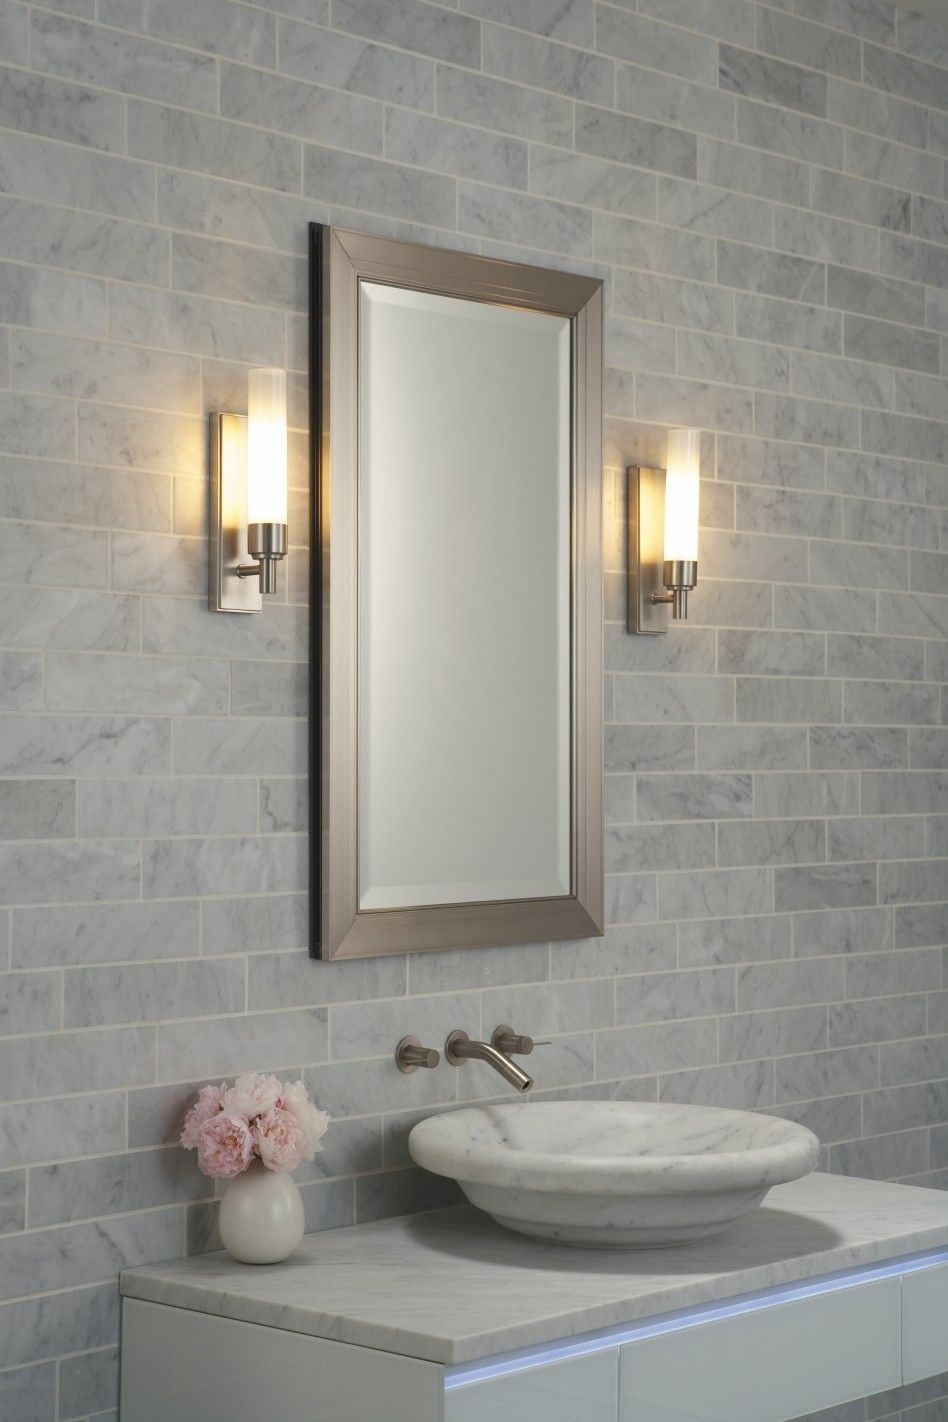 Bathroom awesome bathroom fixtures wall lights over white mirror bathroom awesome bathroom fixtures wall lights over white mirror grey brick wall decoration white vessel aloadofball Gallery